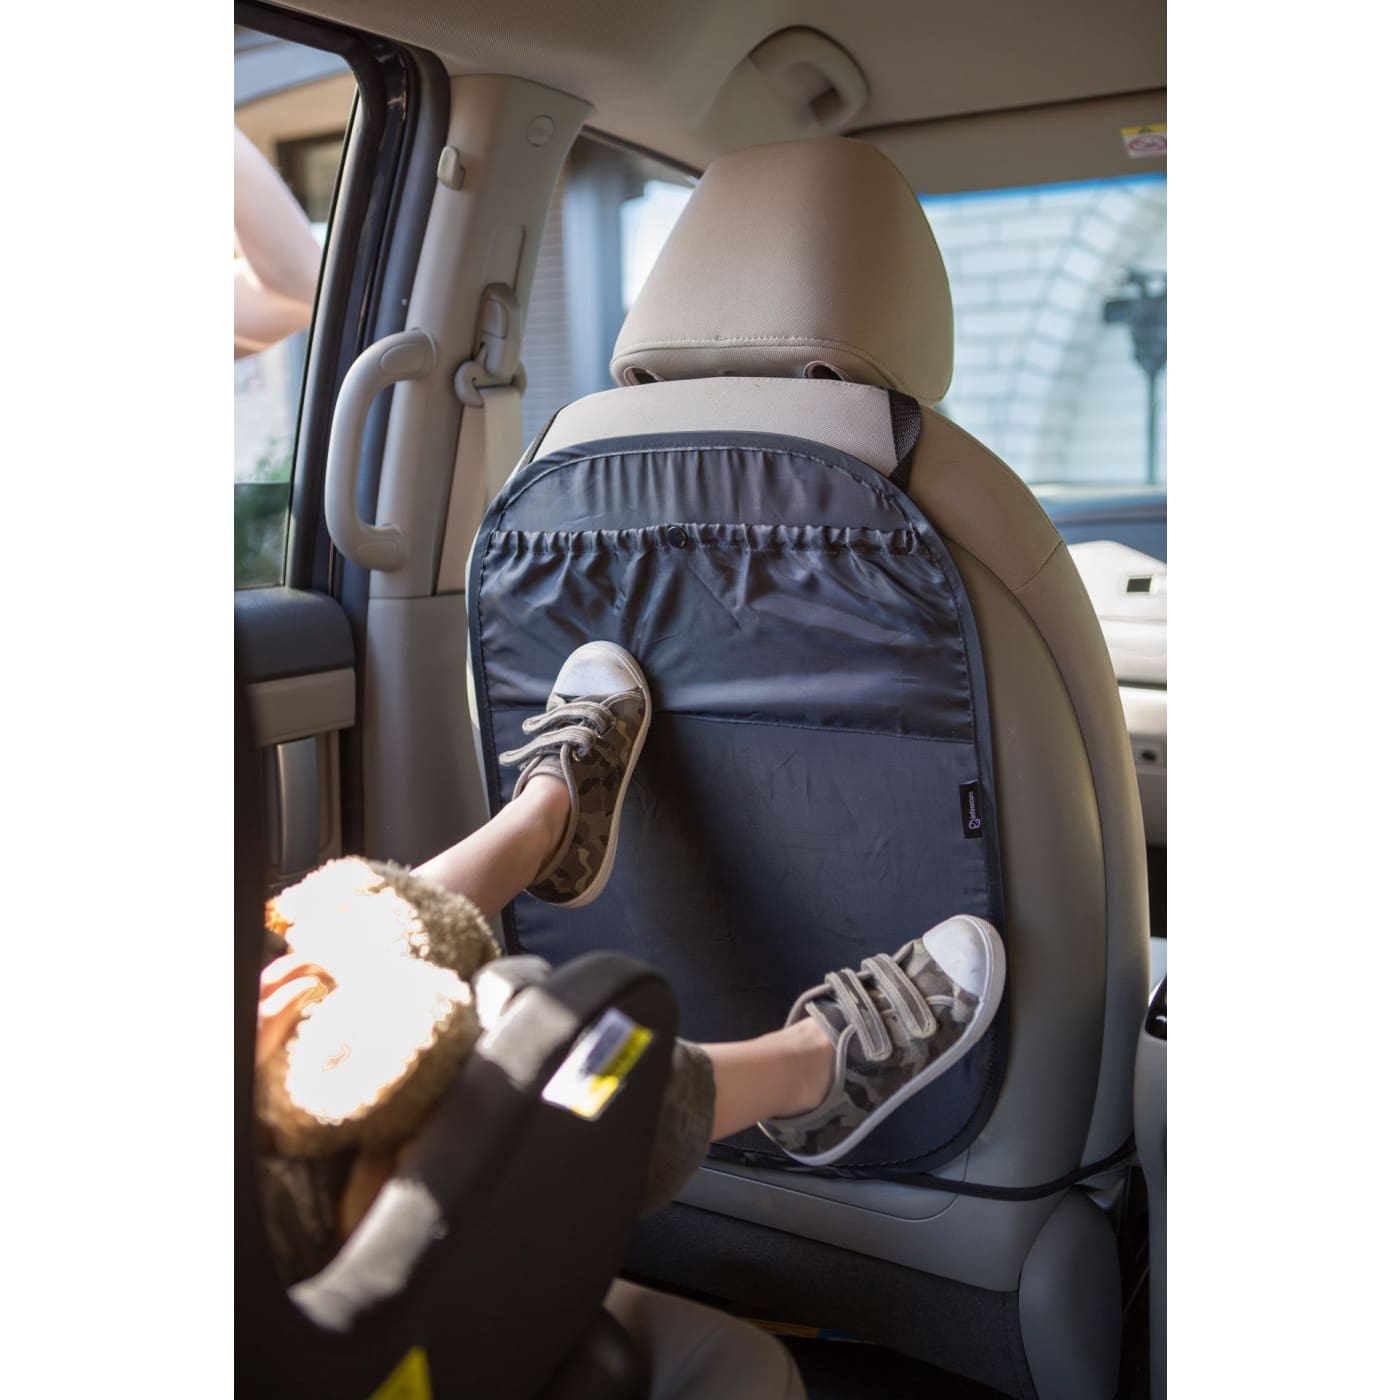 InfaSecure Scuff Mat - CAR SEATS - SEAT PROTECTORS/MIRRORS/STORAGE